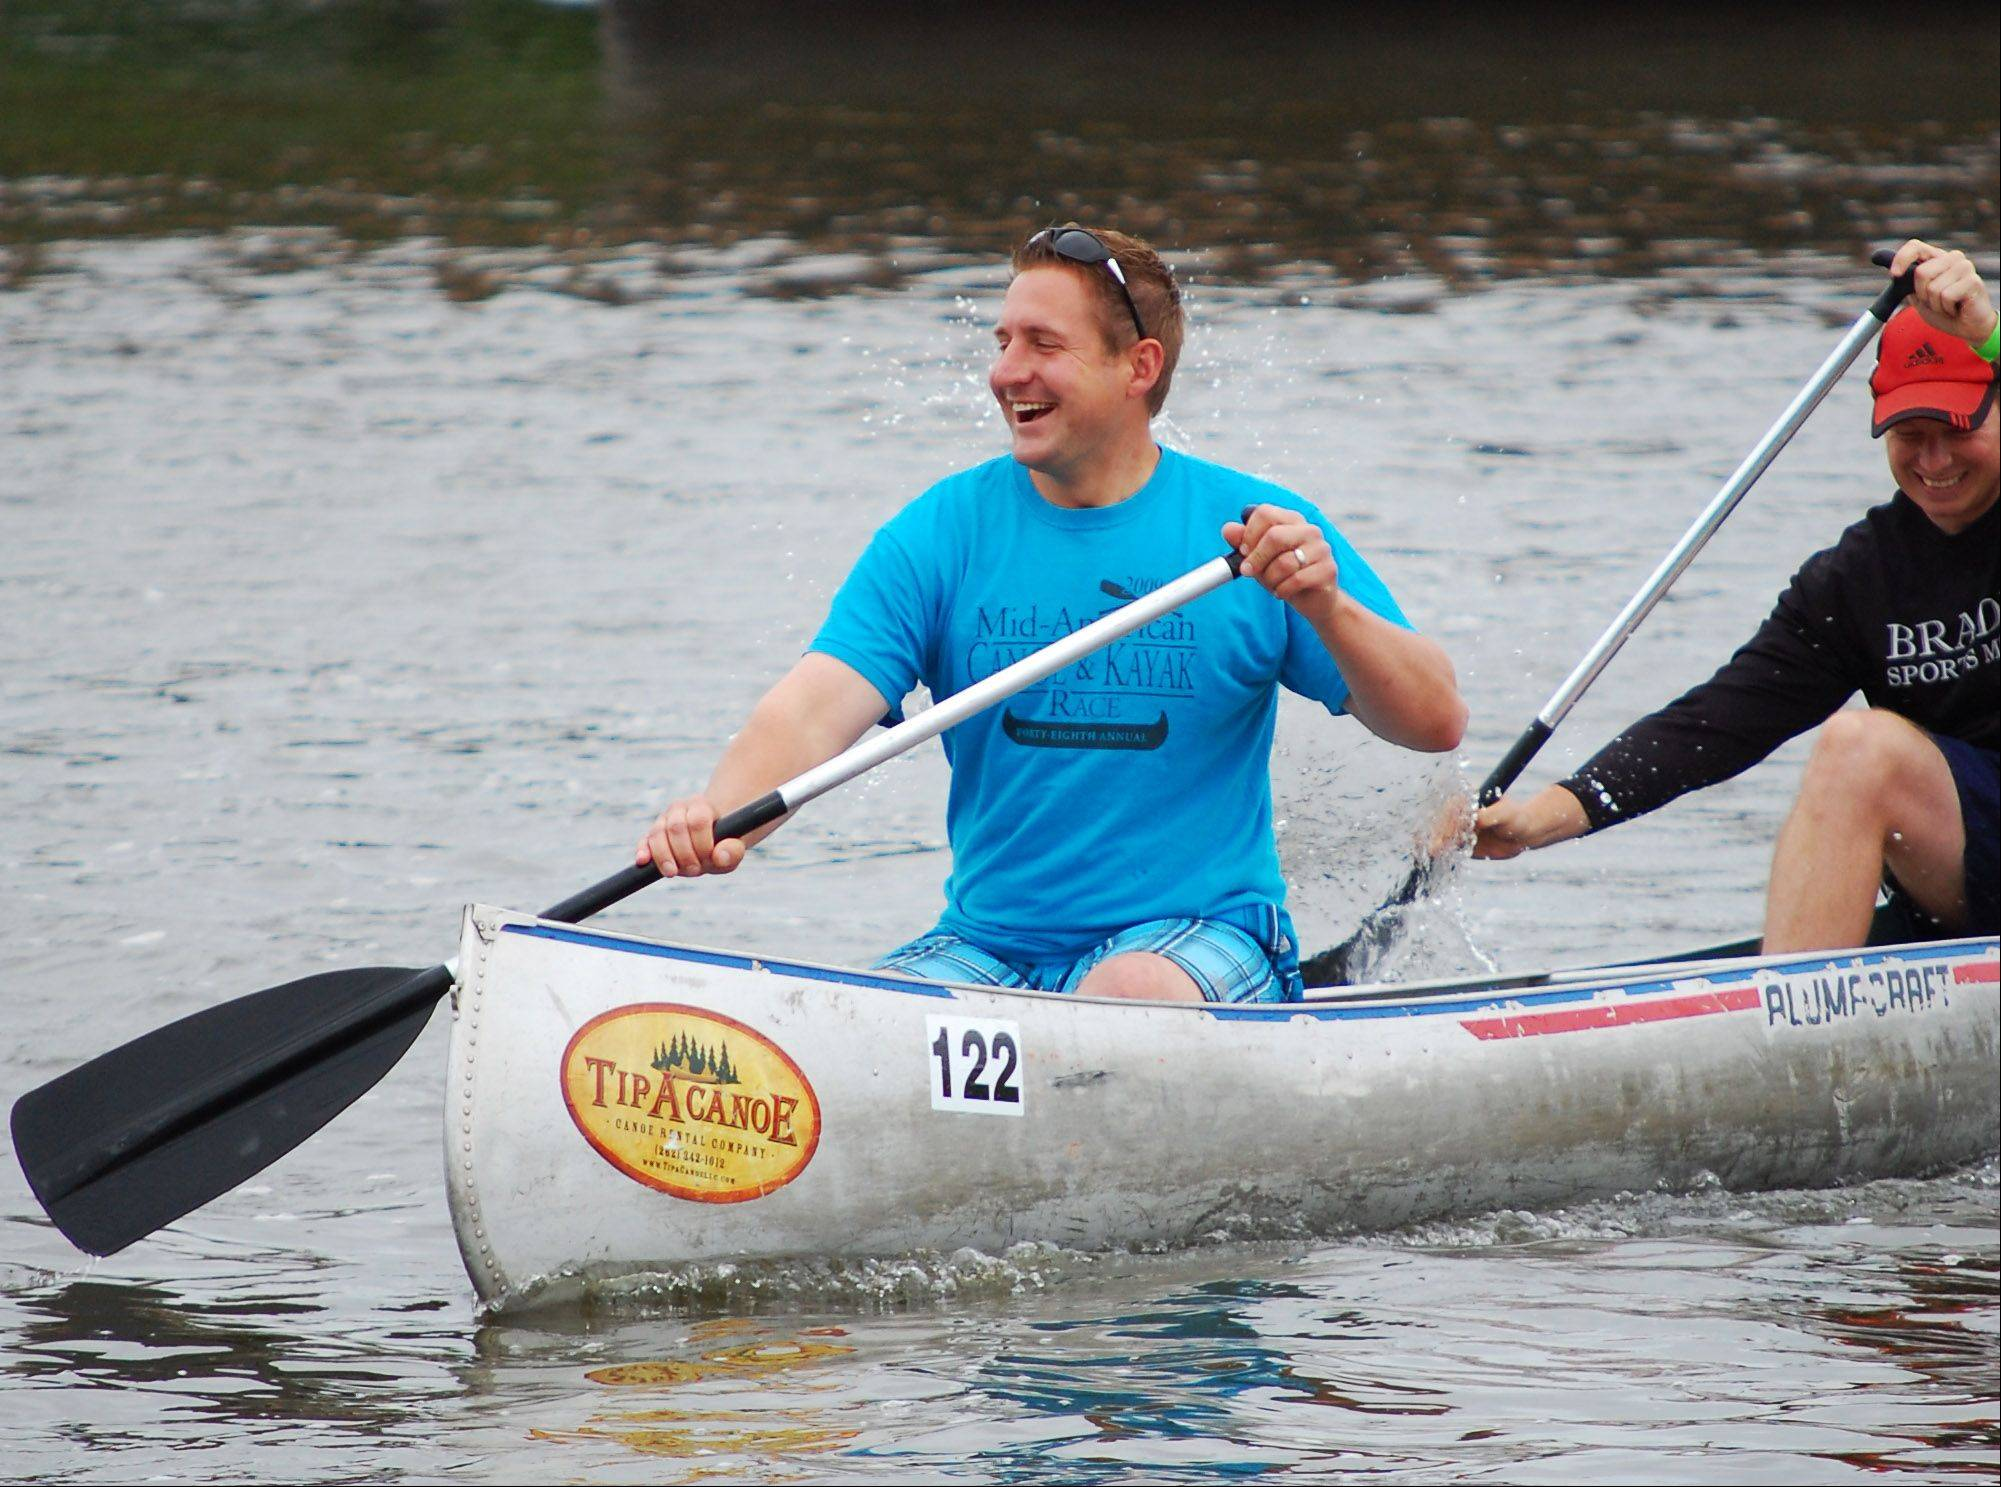 Dave Slowik of Oswego and Marcus Ohnemus of Plainfield got turned around while competing in the 52nd Mid-American Canoe and Kayak Race on Sunday. The race had heats starting from St. Charles and Batavia with both finishing at McCullough Park in Aurora.